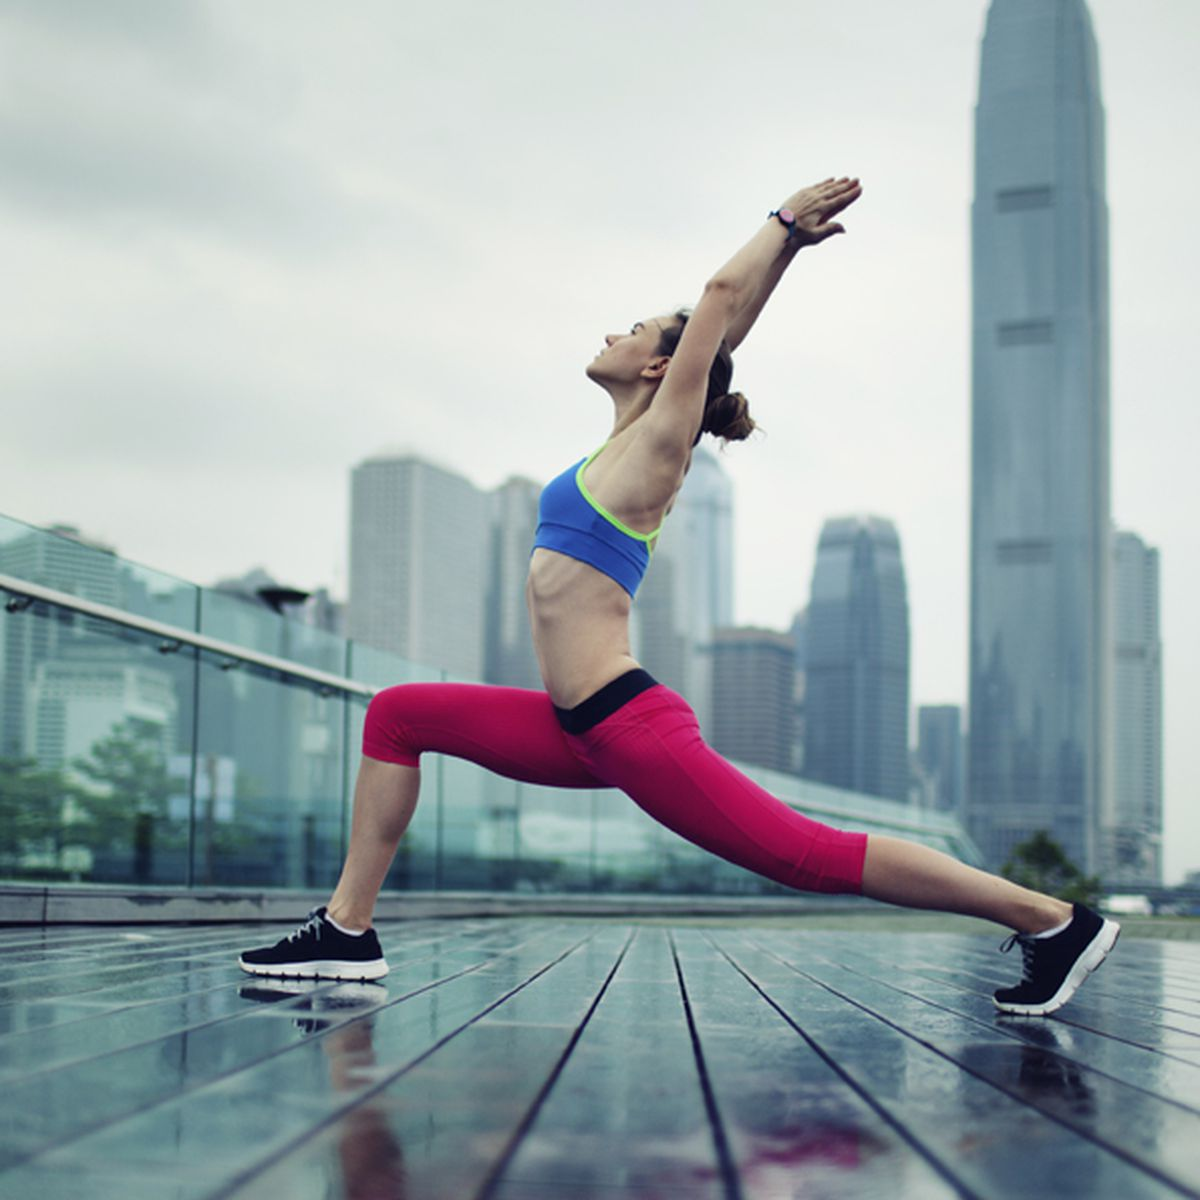 Yes Yoga For Weight Loss Works But Not Why You Think 9coach